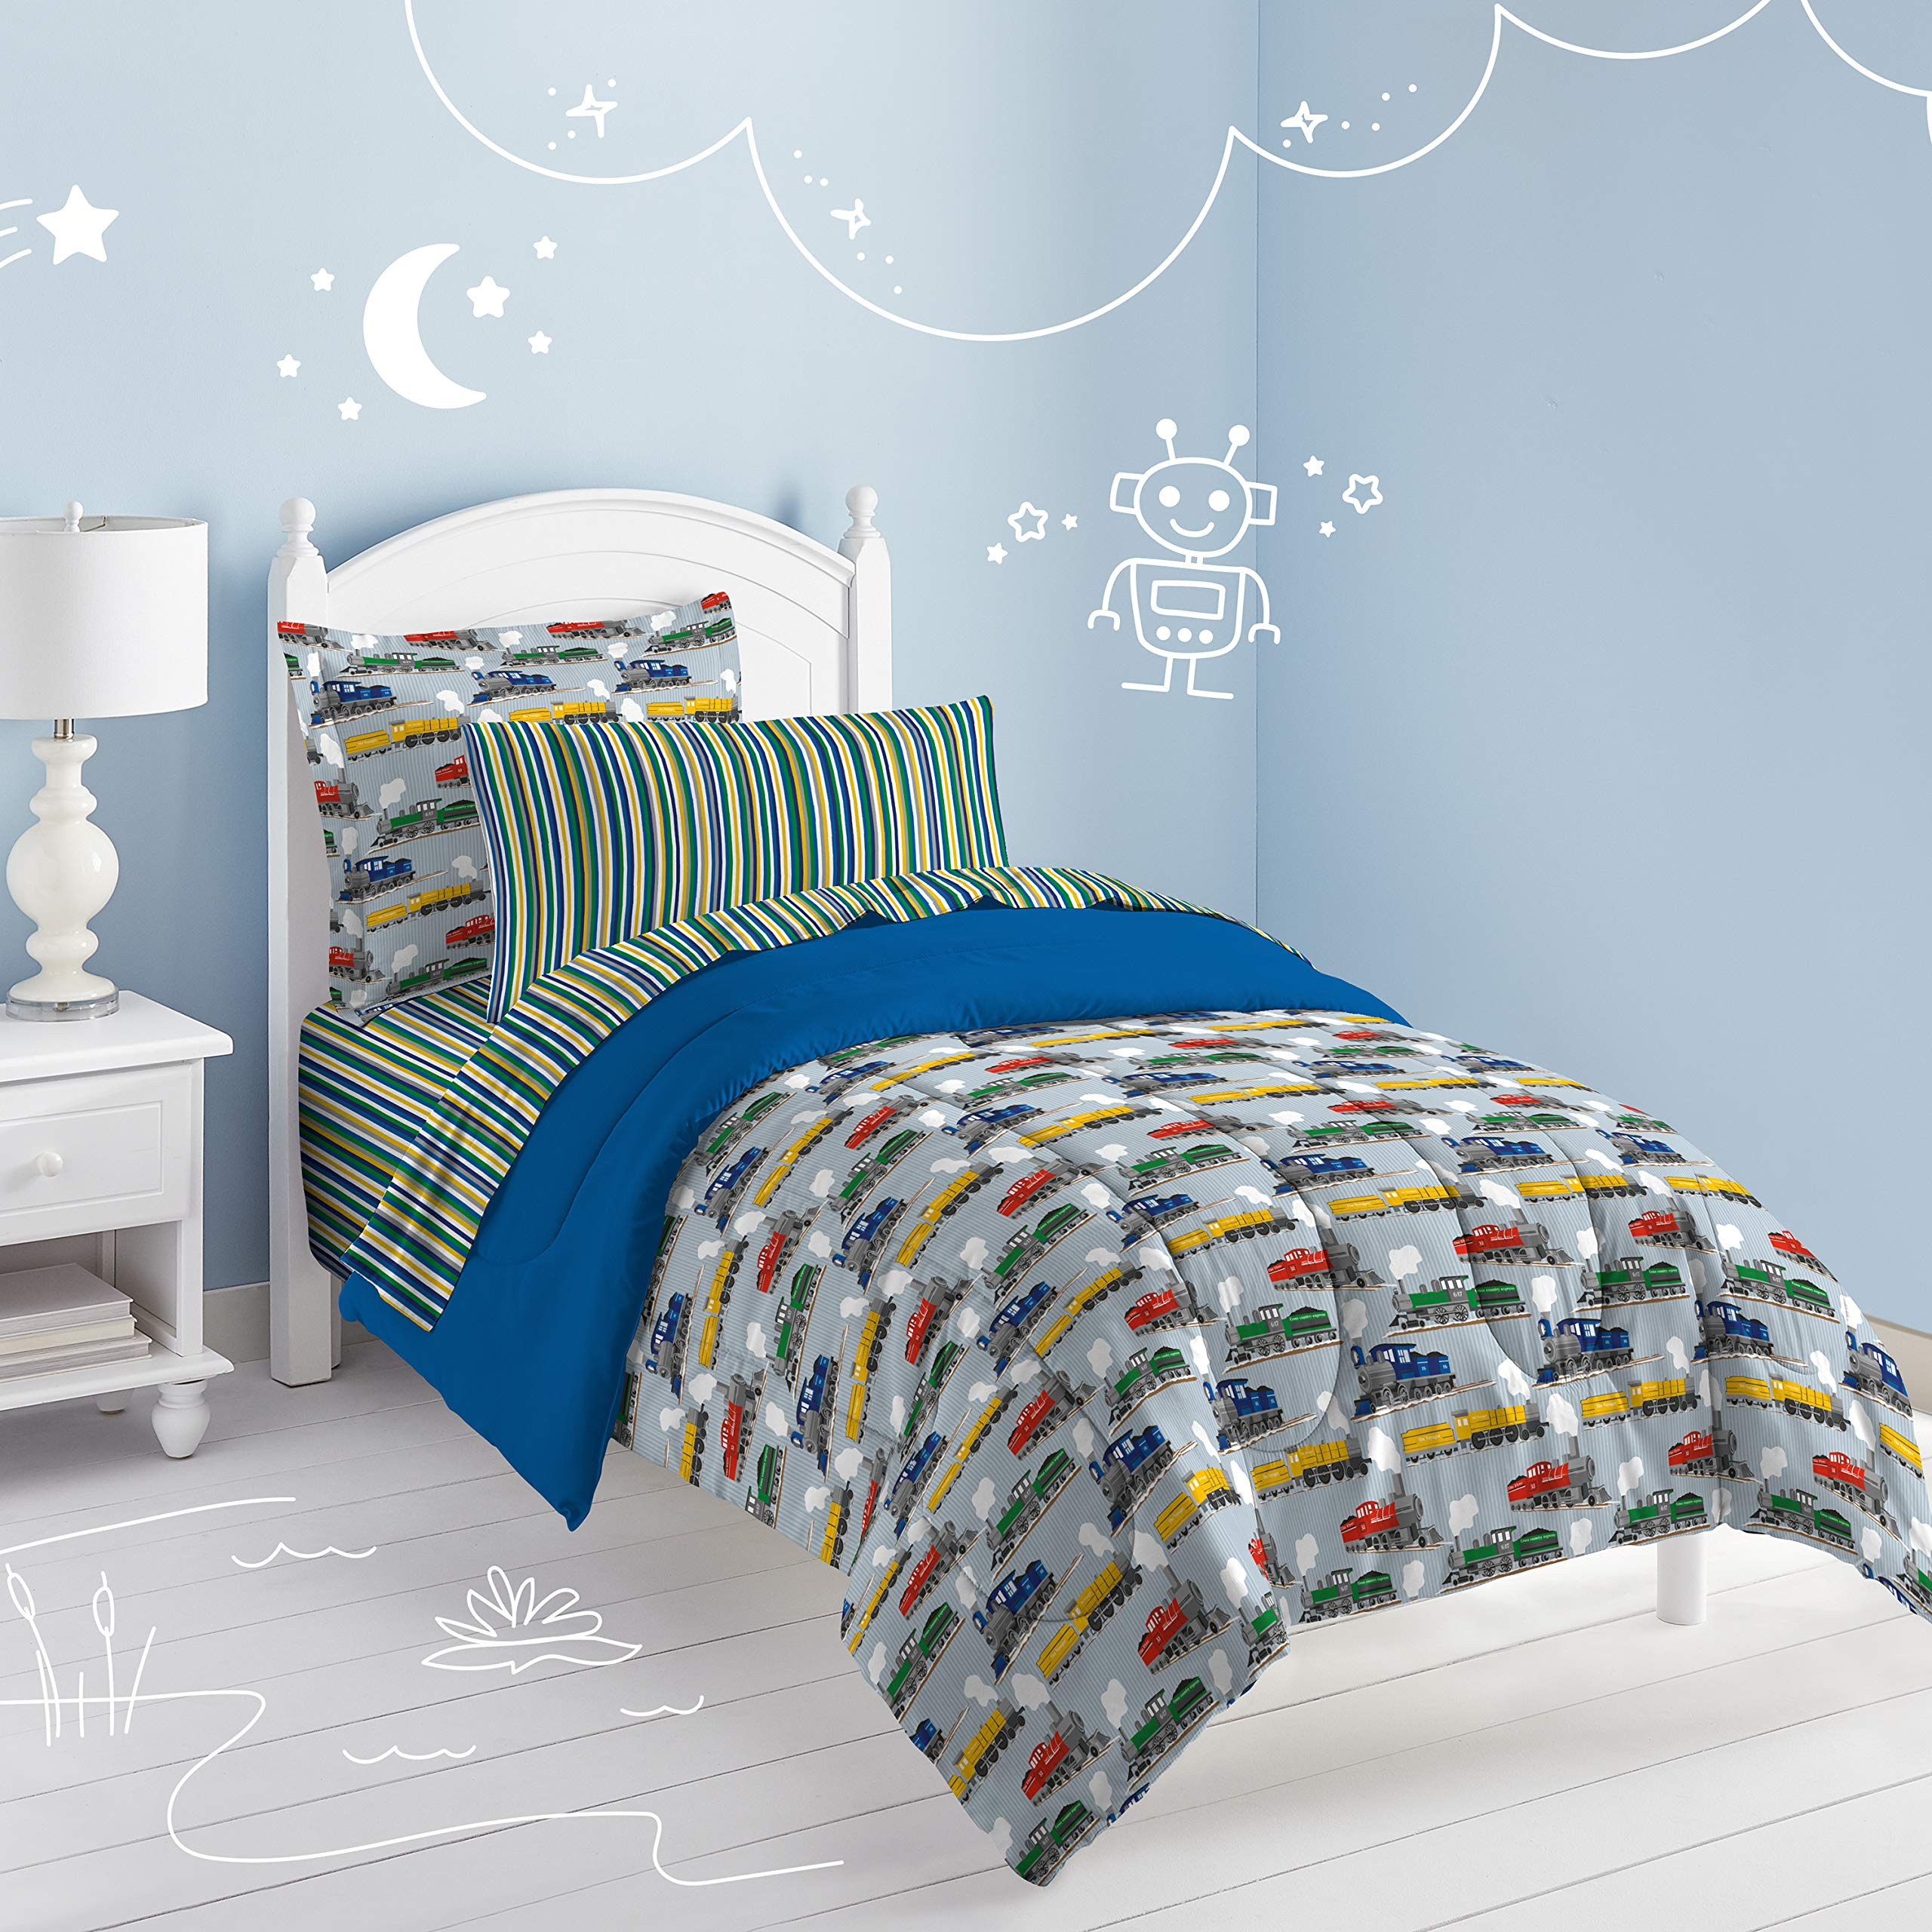 Dream Factory Trains Ultra Soft Microfiber Boys Comforter Set, Blue, Full by Dream Factory (Image #5)